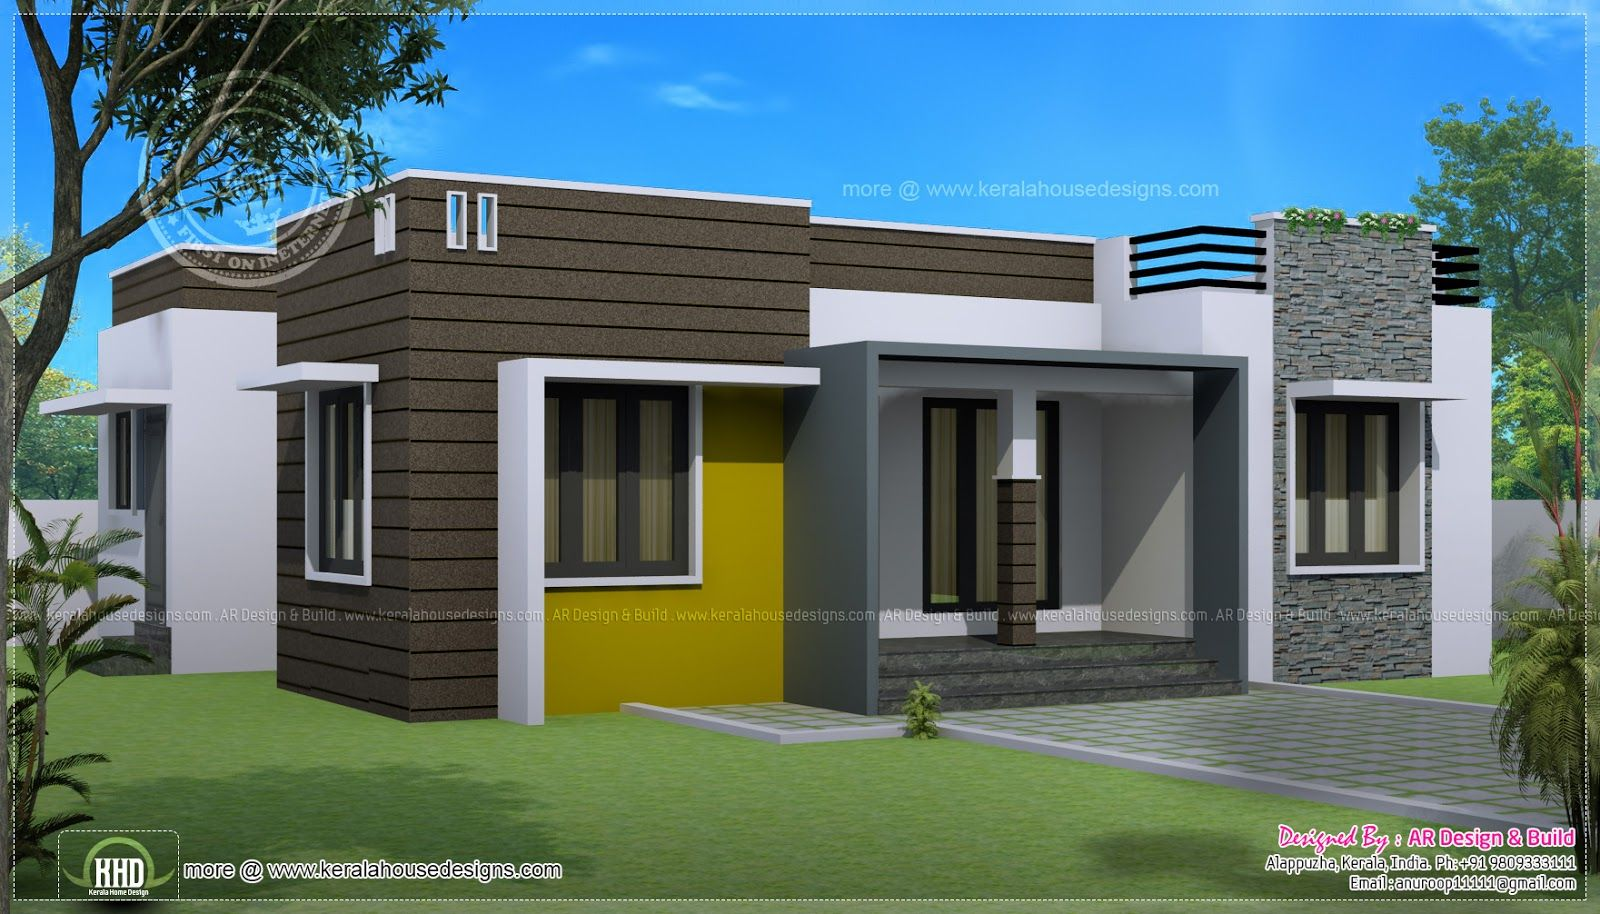 sq ft house provision stair future expansion home kerala style single floor  house plan square meters. sq ft house provision stair future expansion home kerala style